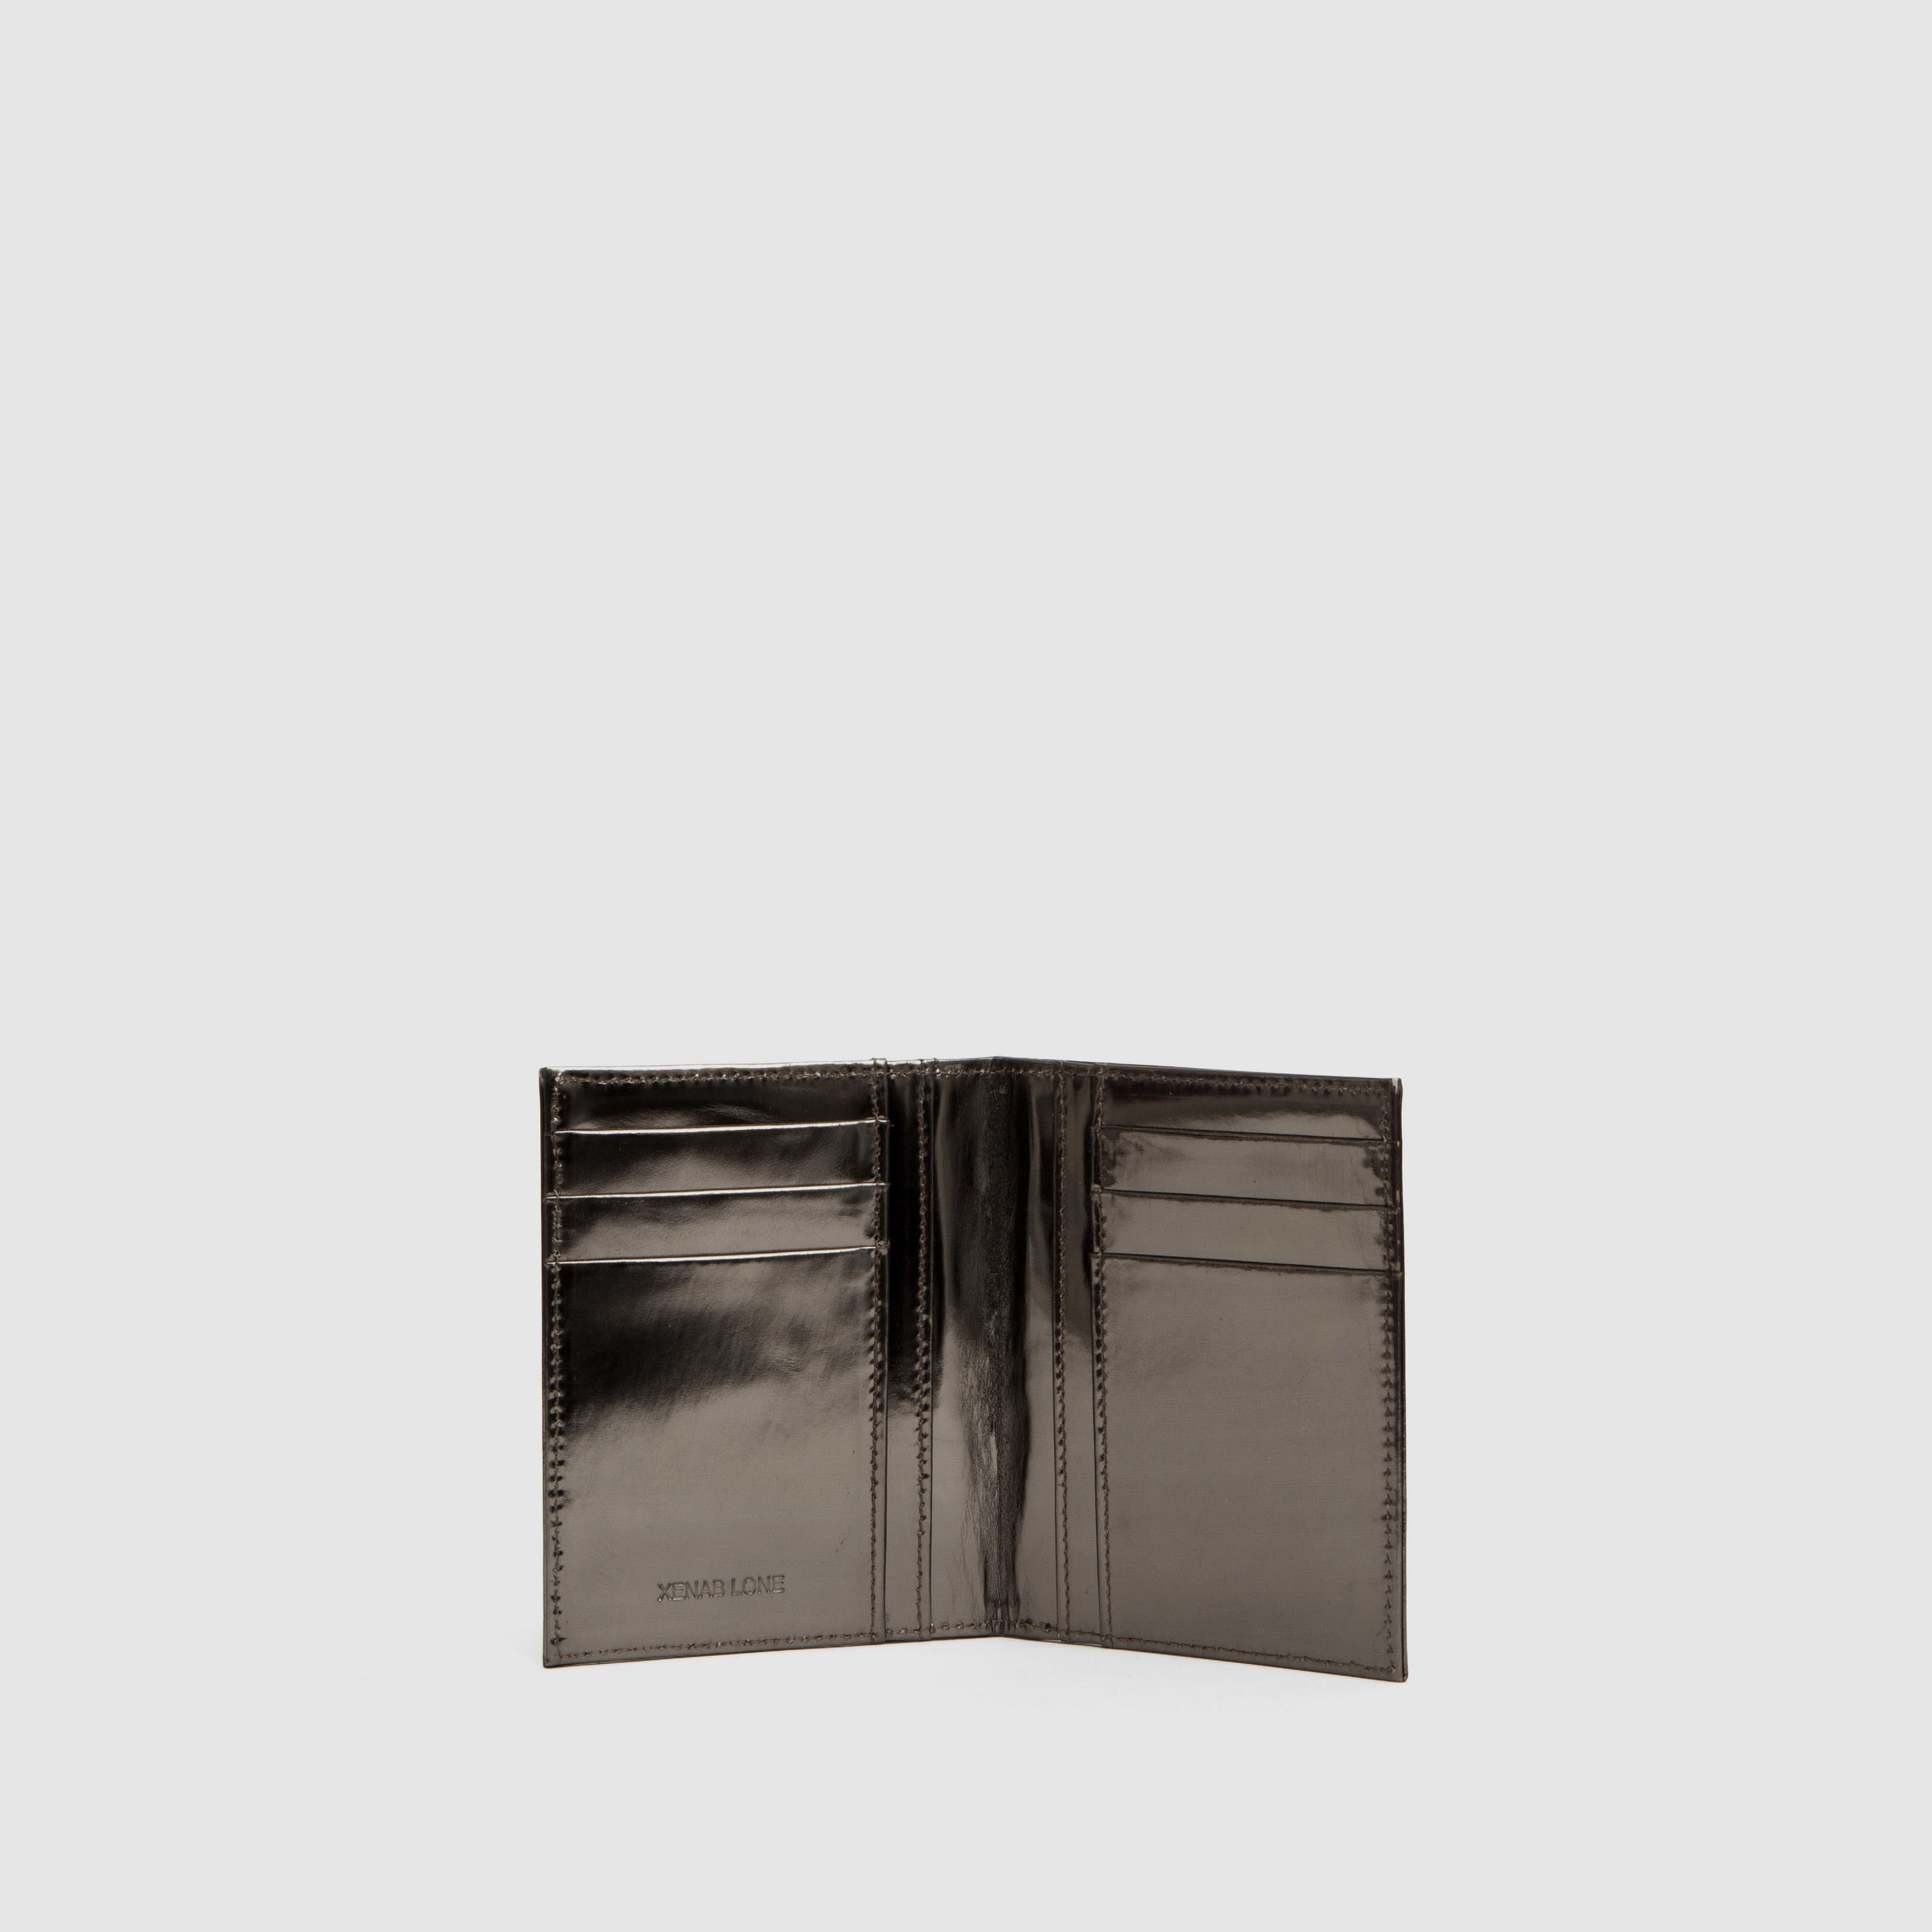 Wallets&Pouches_0003s_0001s_0003_Layer 5.jpg